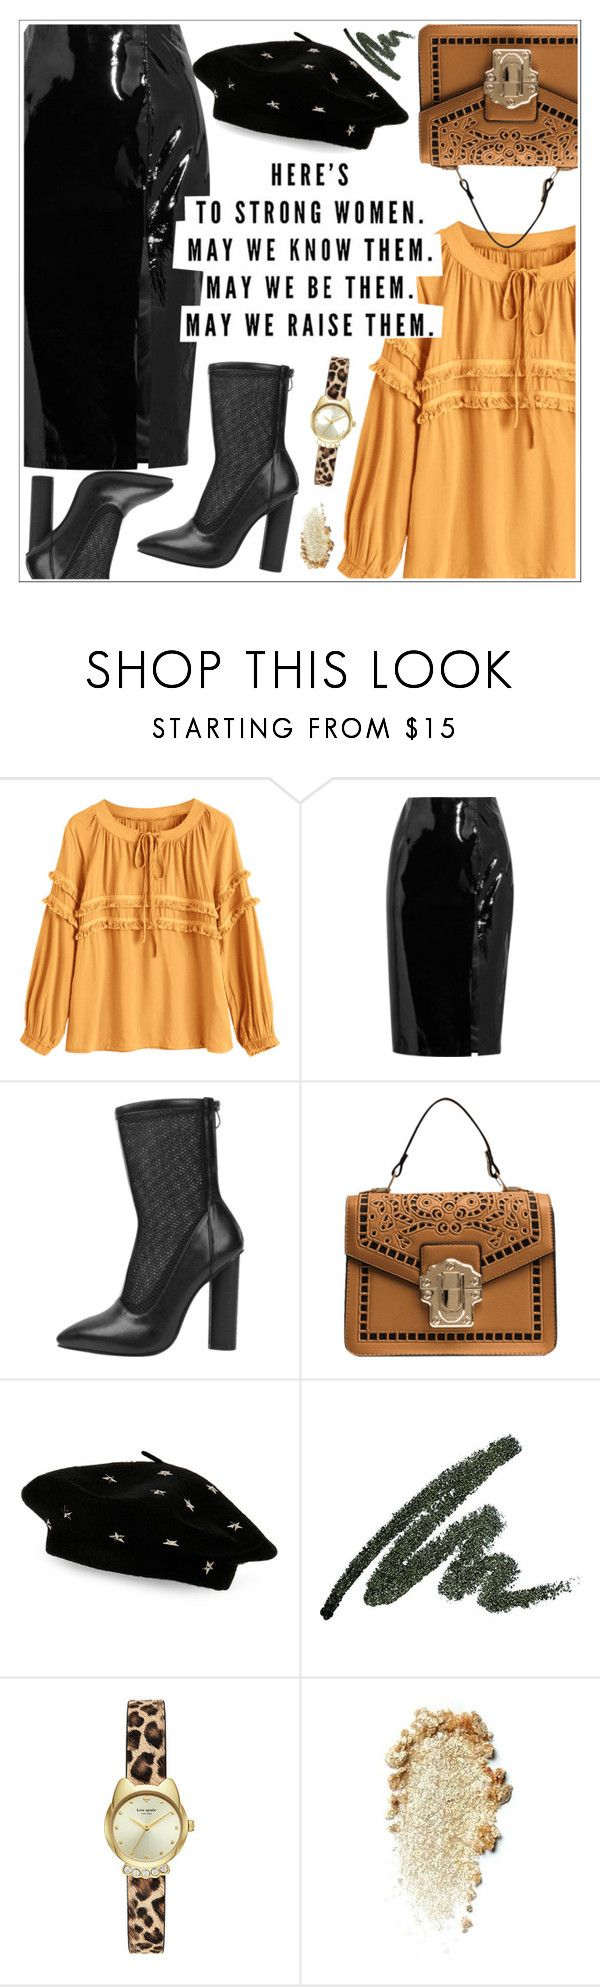 """""""Here's to strong women"""" by teoecar ❤ liked on Polyvore featuring Topshop Unique and Steve Madden"""